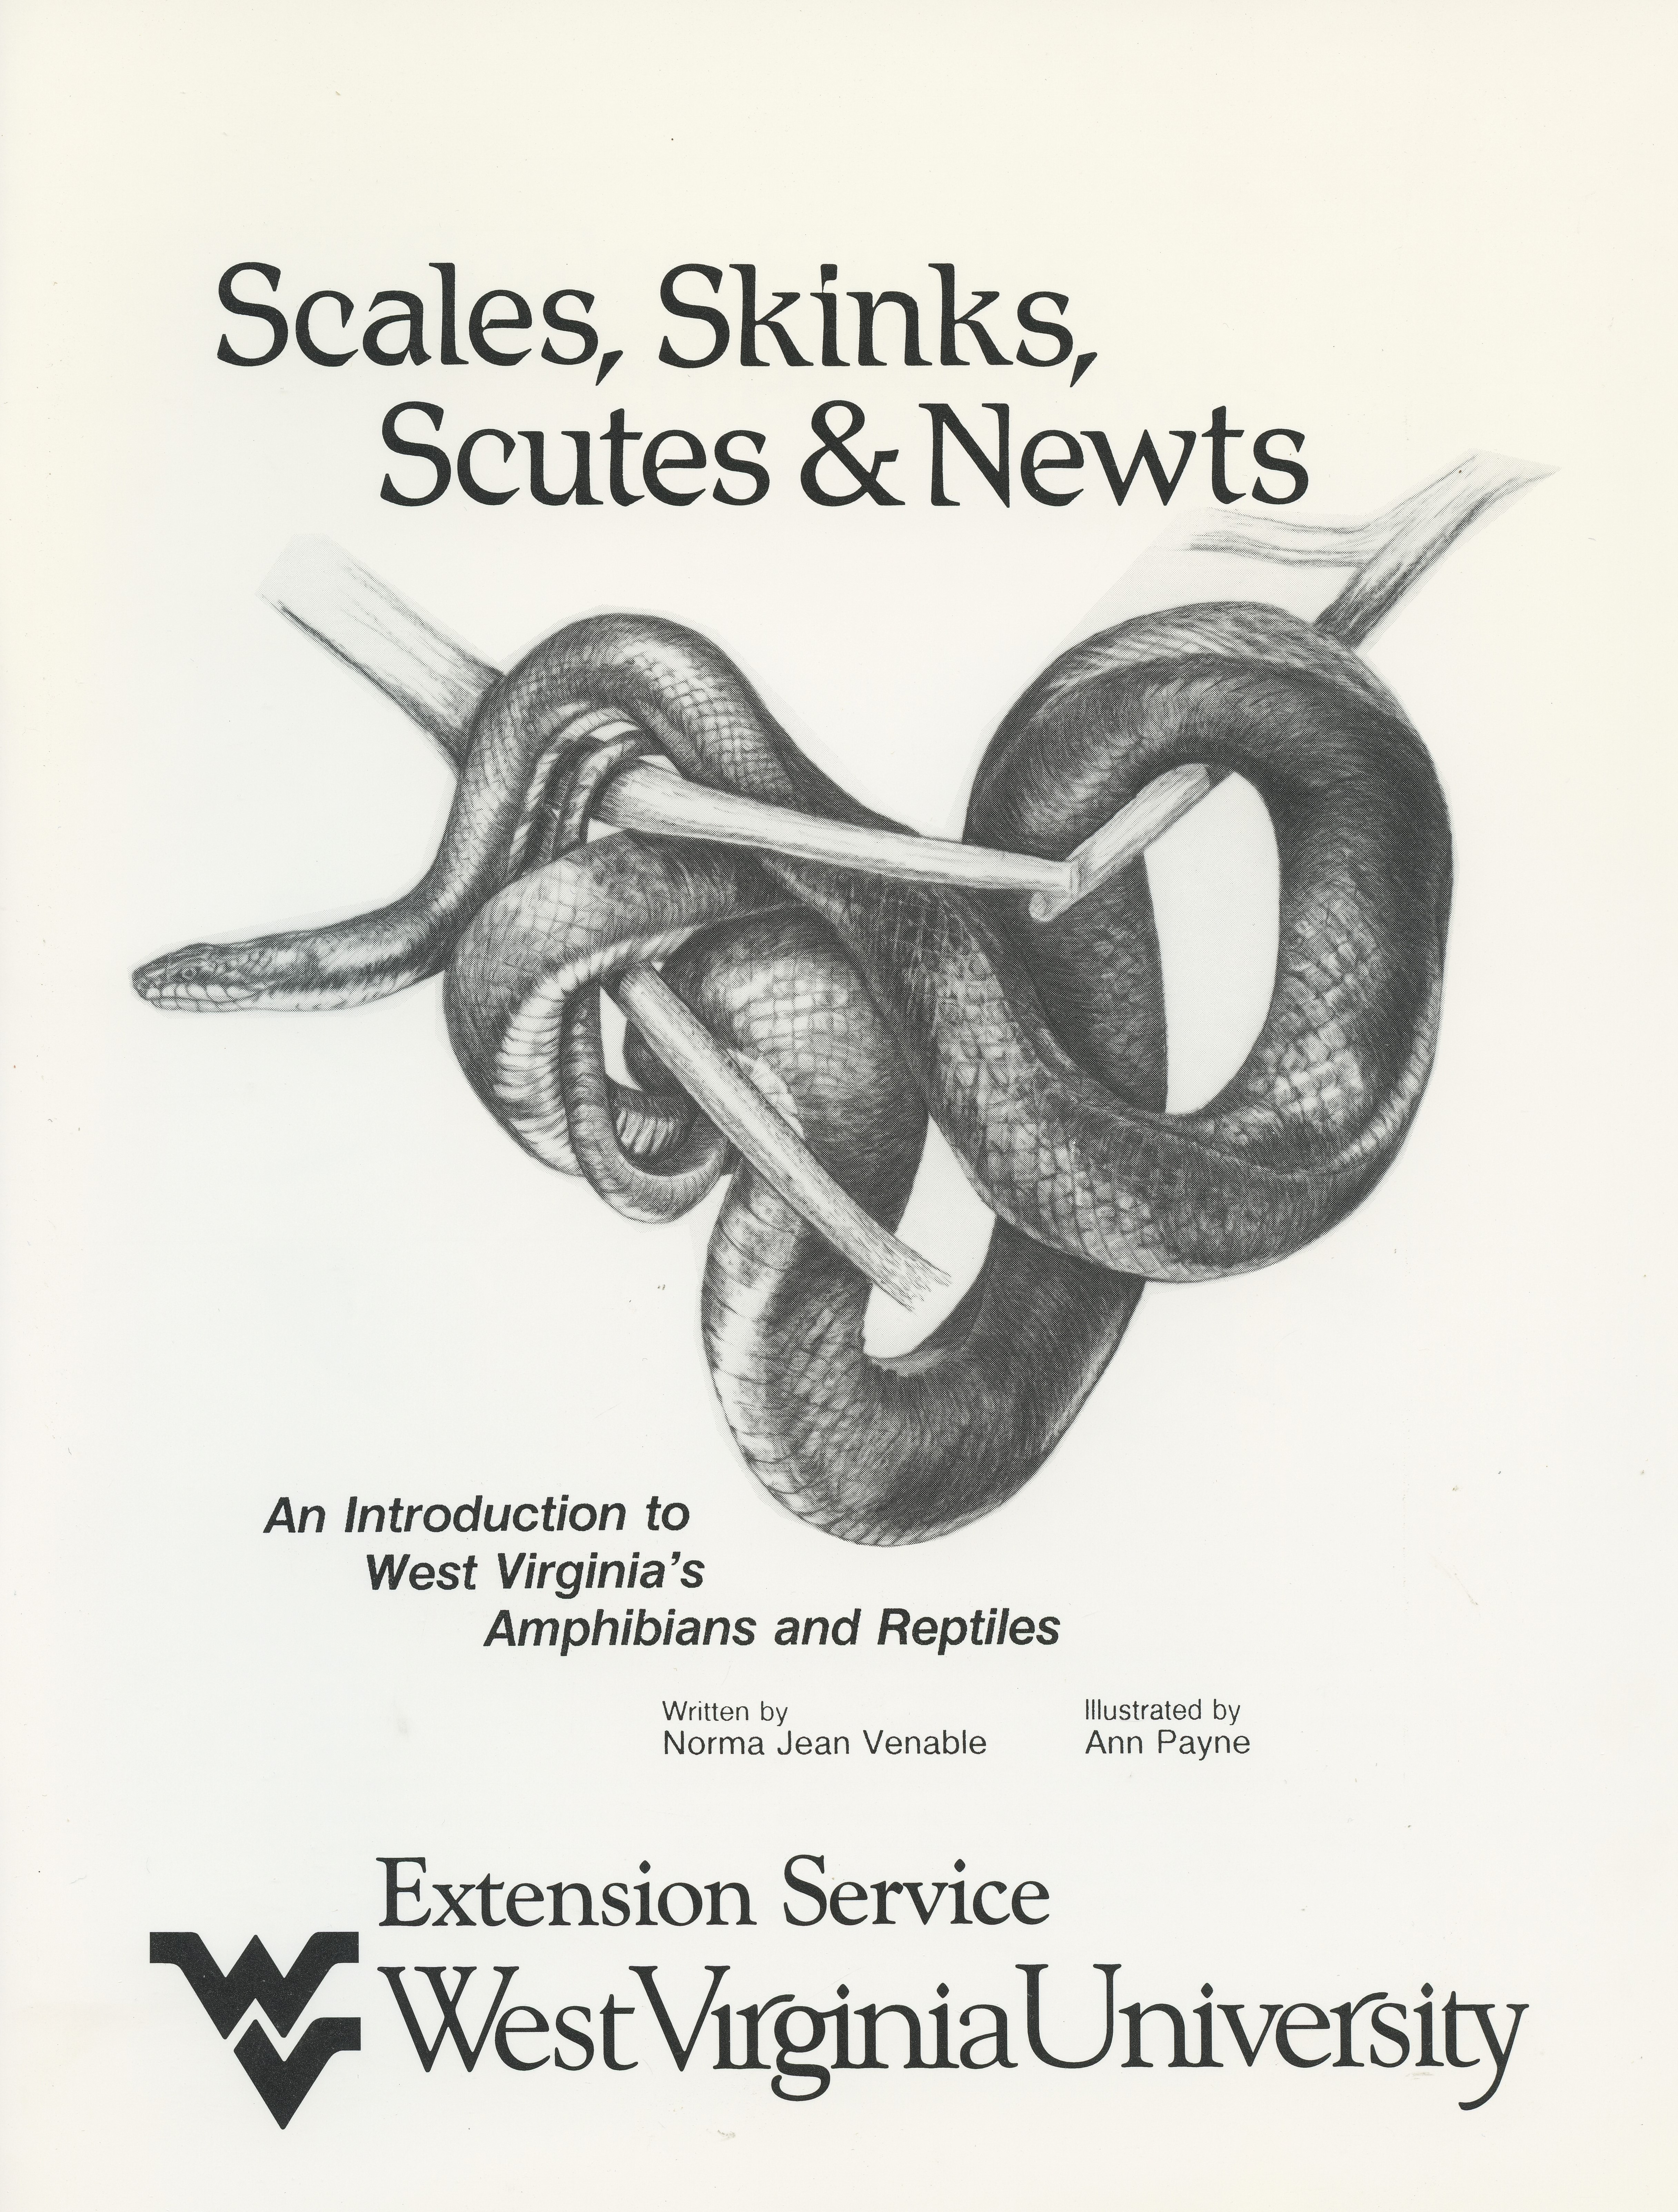 Scales, Skinks, Scutes & Newts -- An Introduction to West Virginia's Amphibians and Reptiles